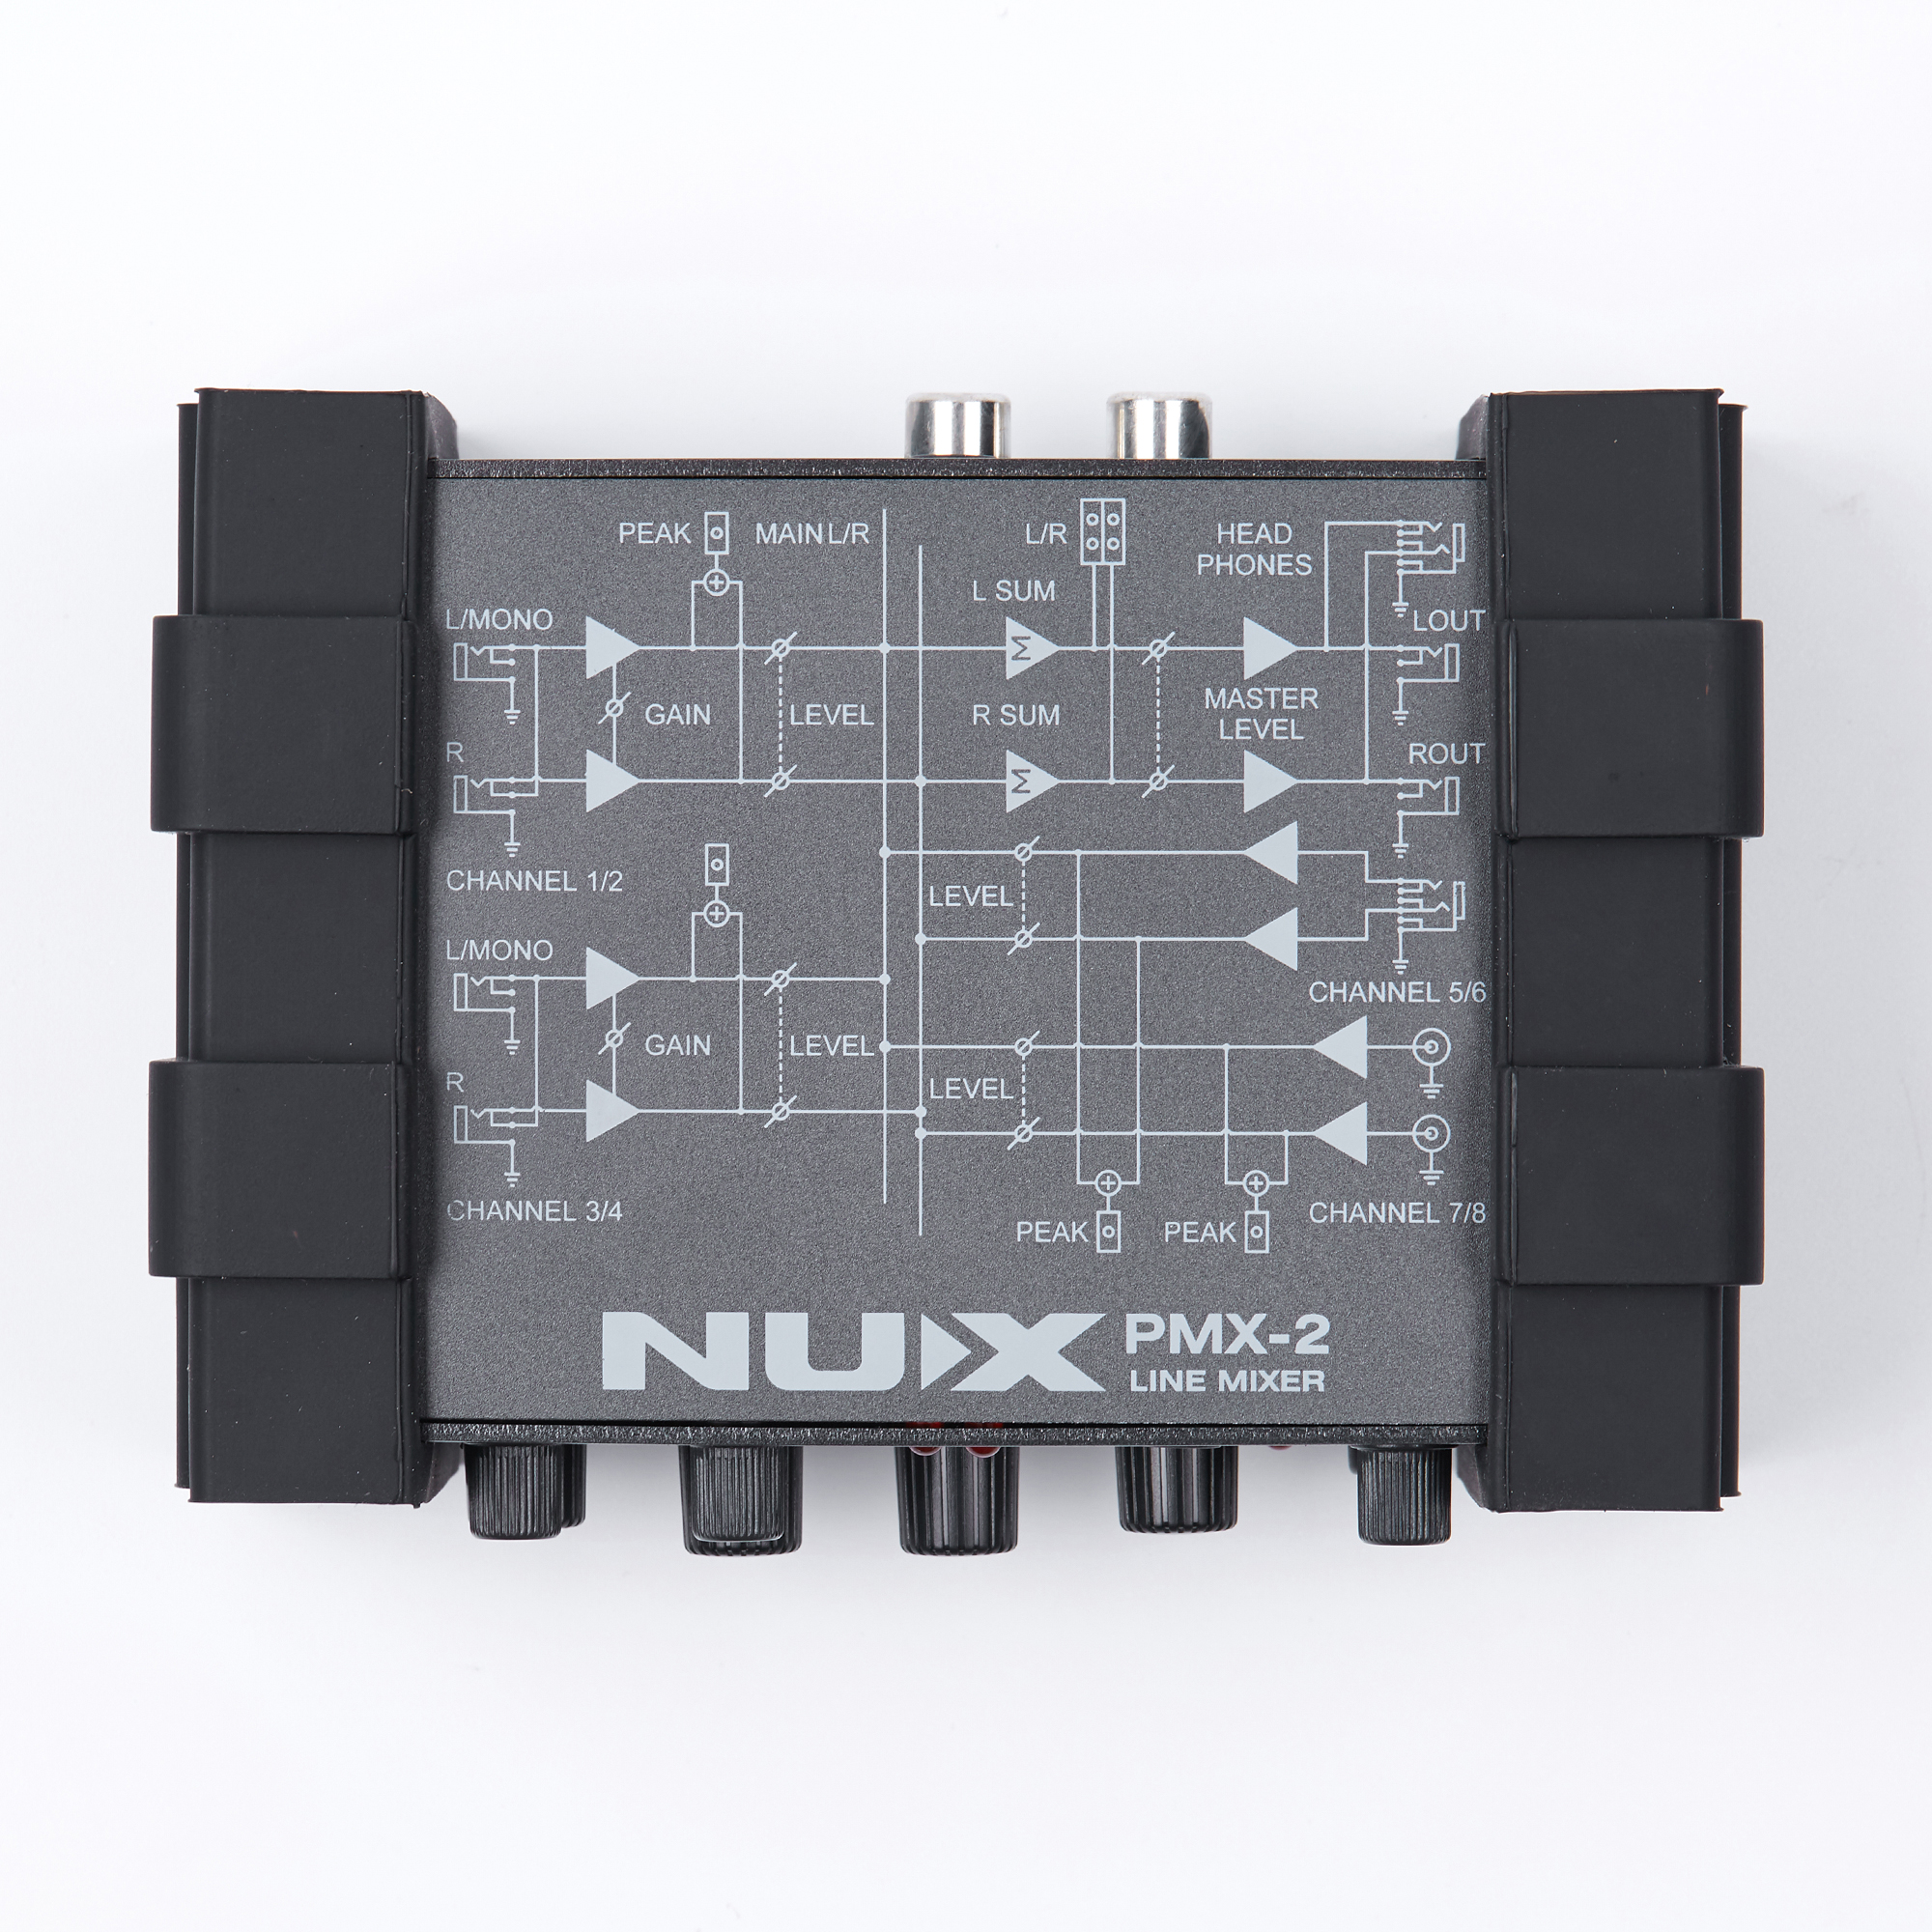 Gain Control 8 Inputs and 2 Outputs NUX PMX-2 Multi-Channel Mini Mixer 30 Musical Instruments Accessories for Guitar Bass Player воблер tsuribito minnow длина 11 см вес 10 7 г 110f 060